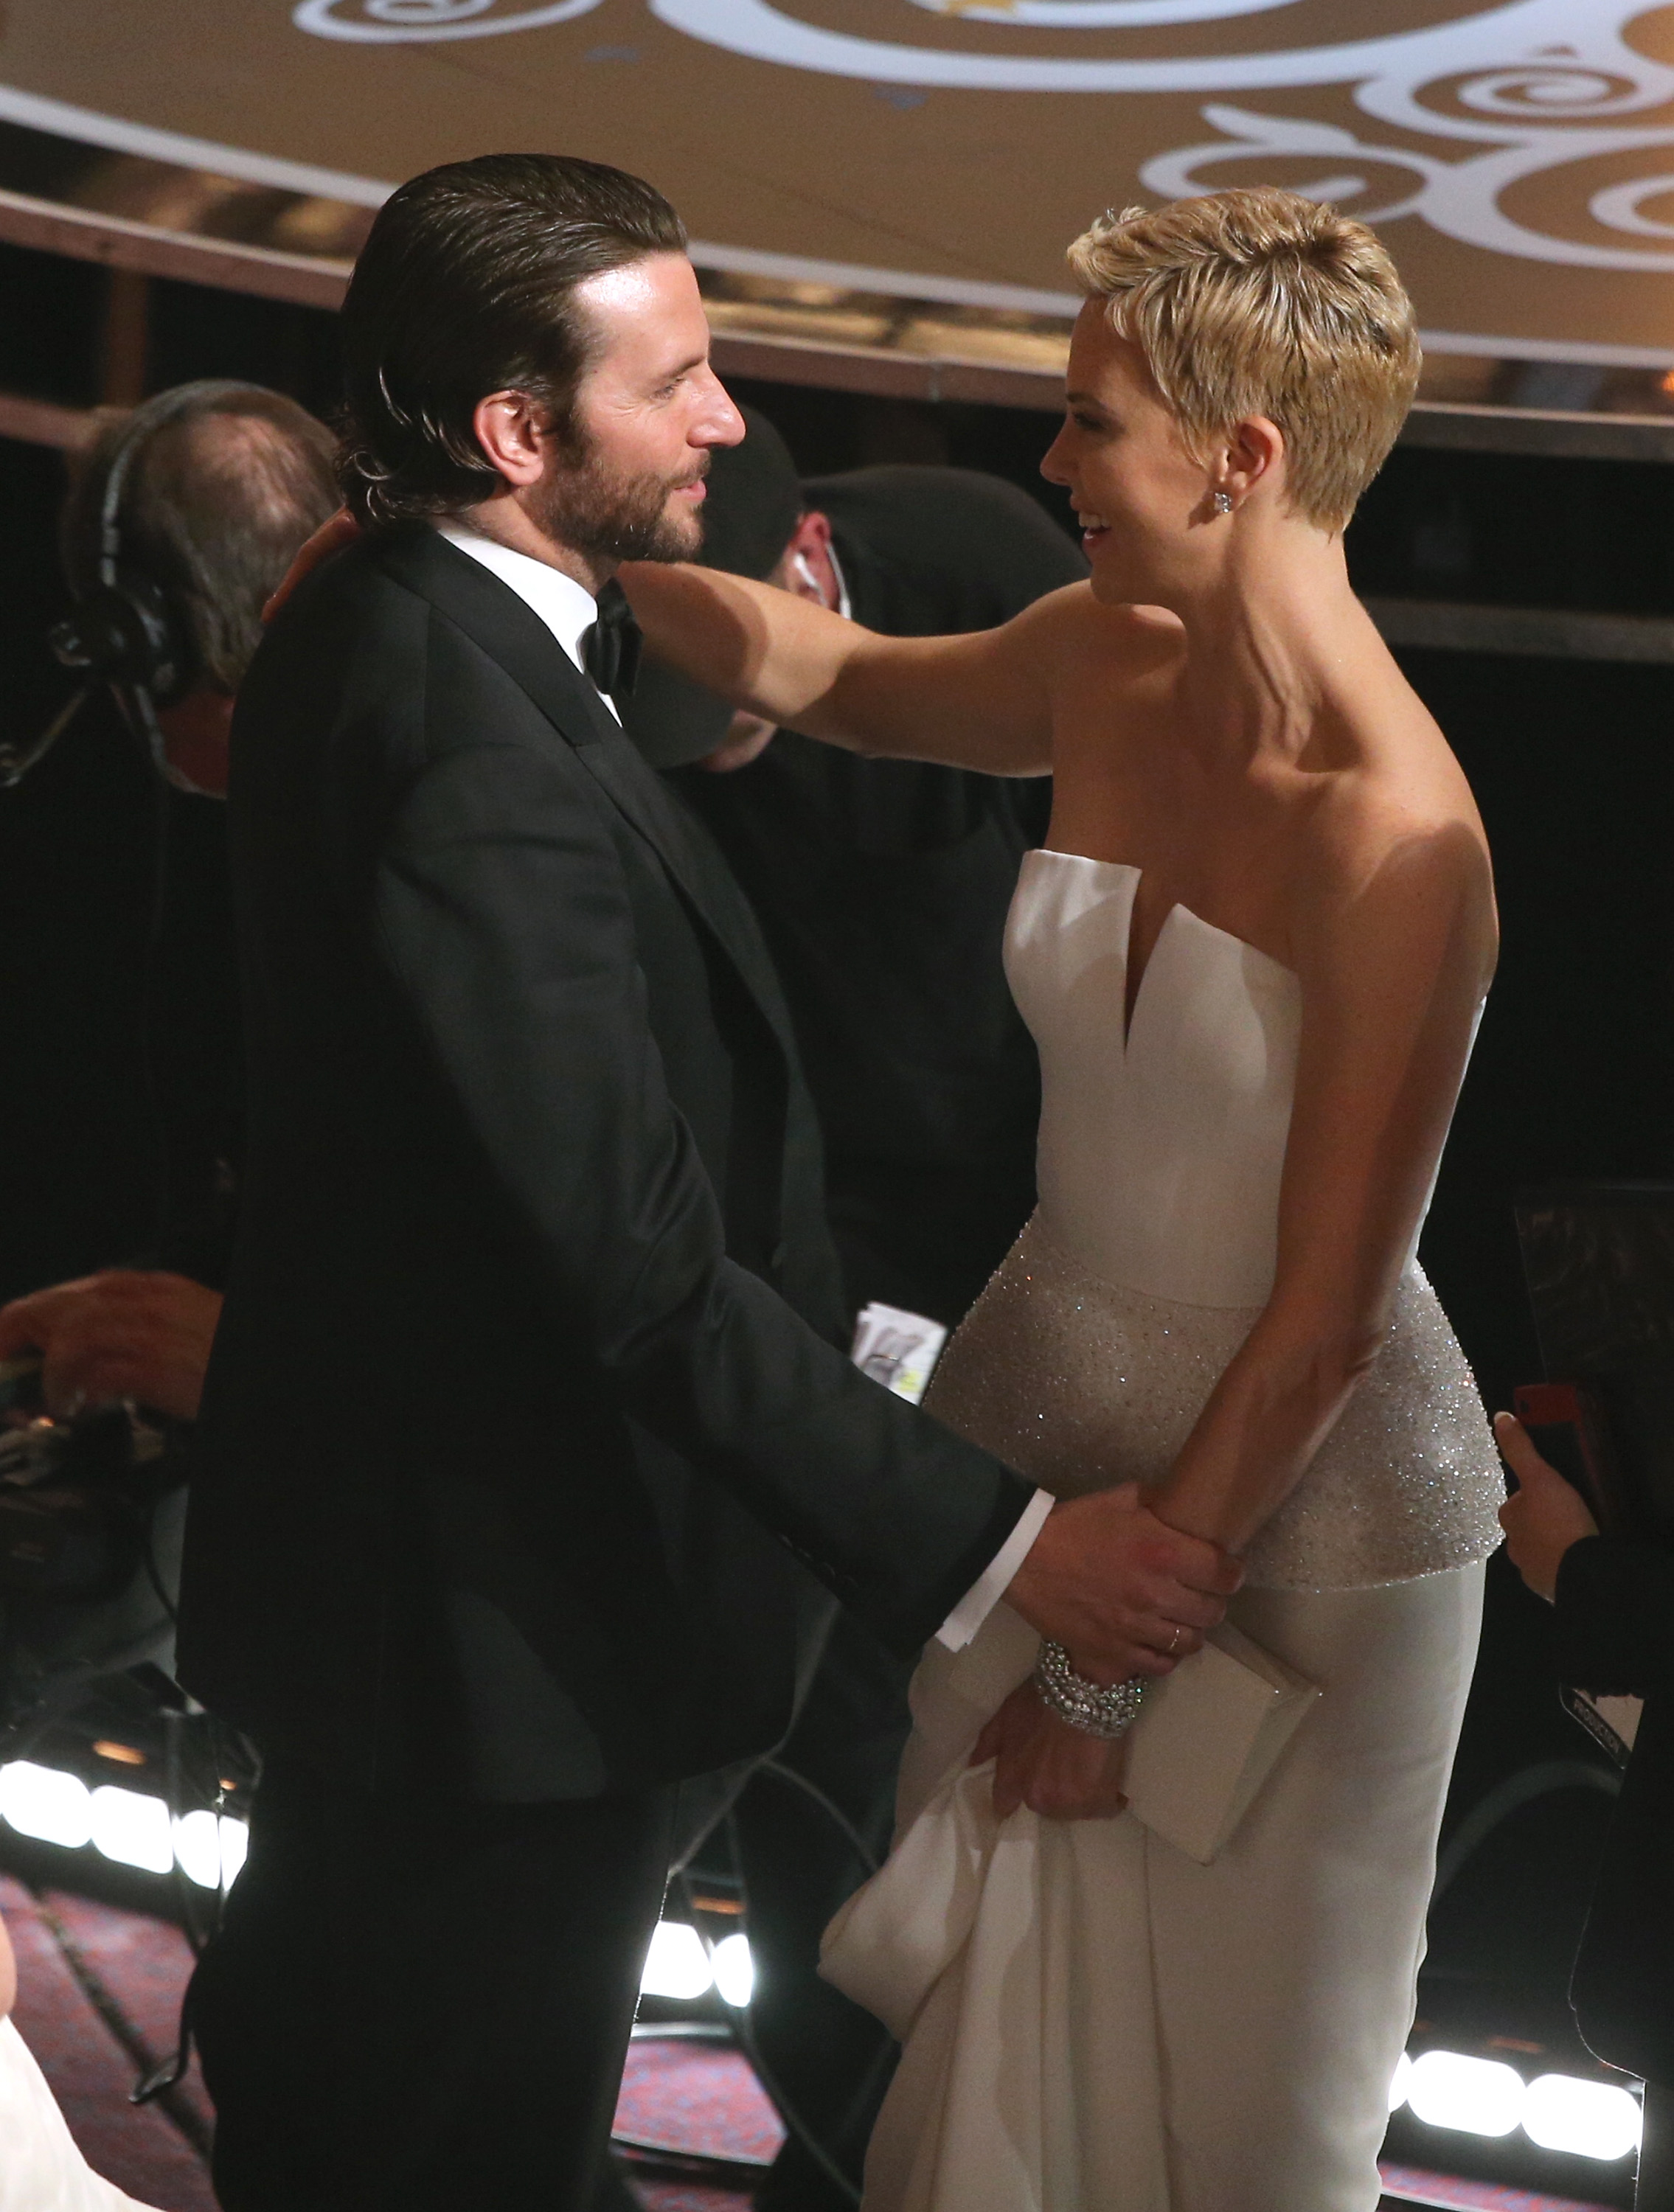 Bradley Cooper and Charlize Theron hugged in the audience.